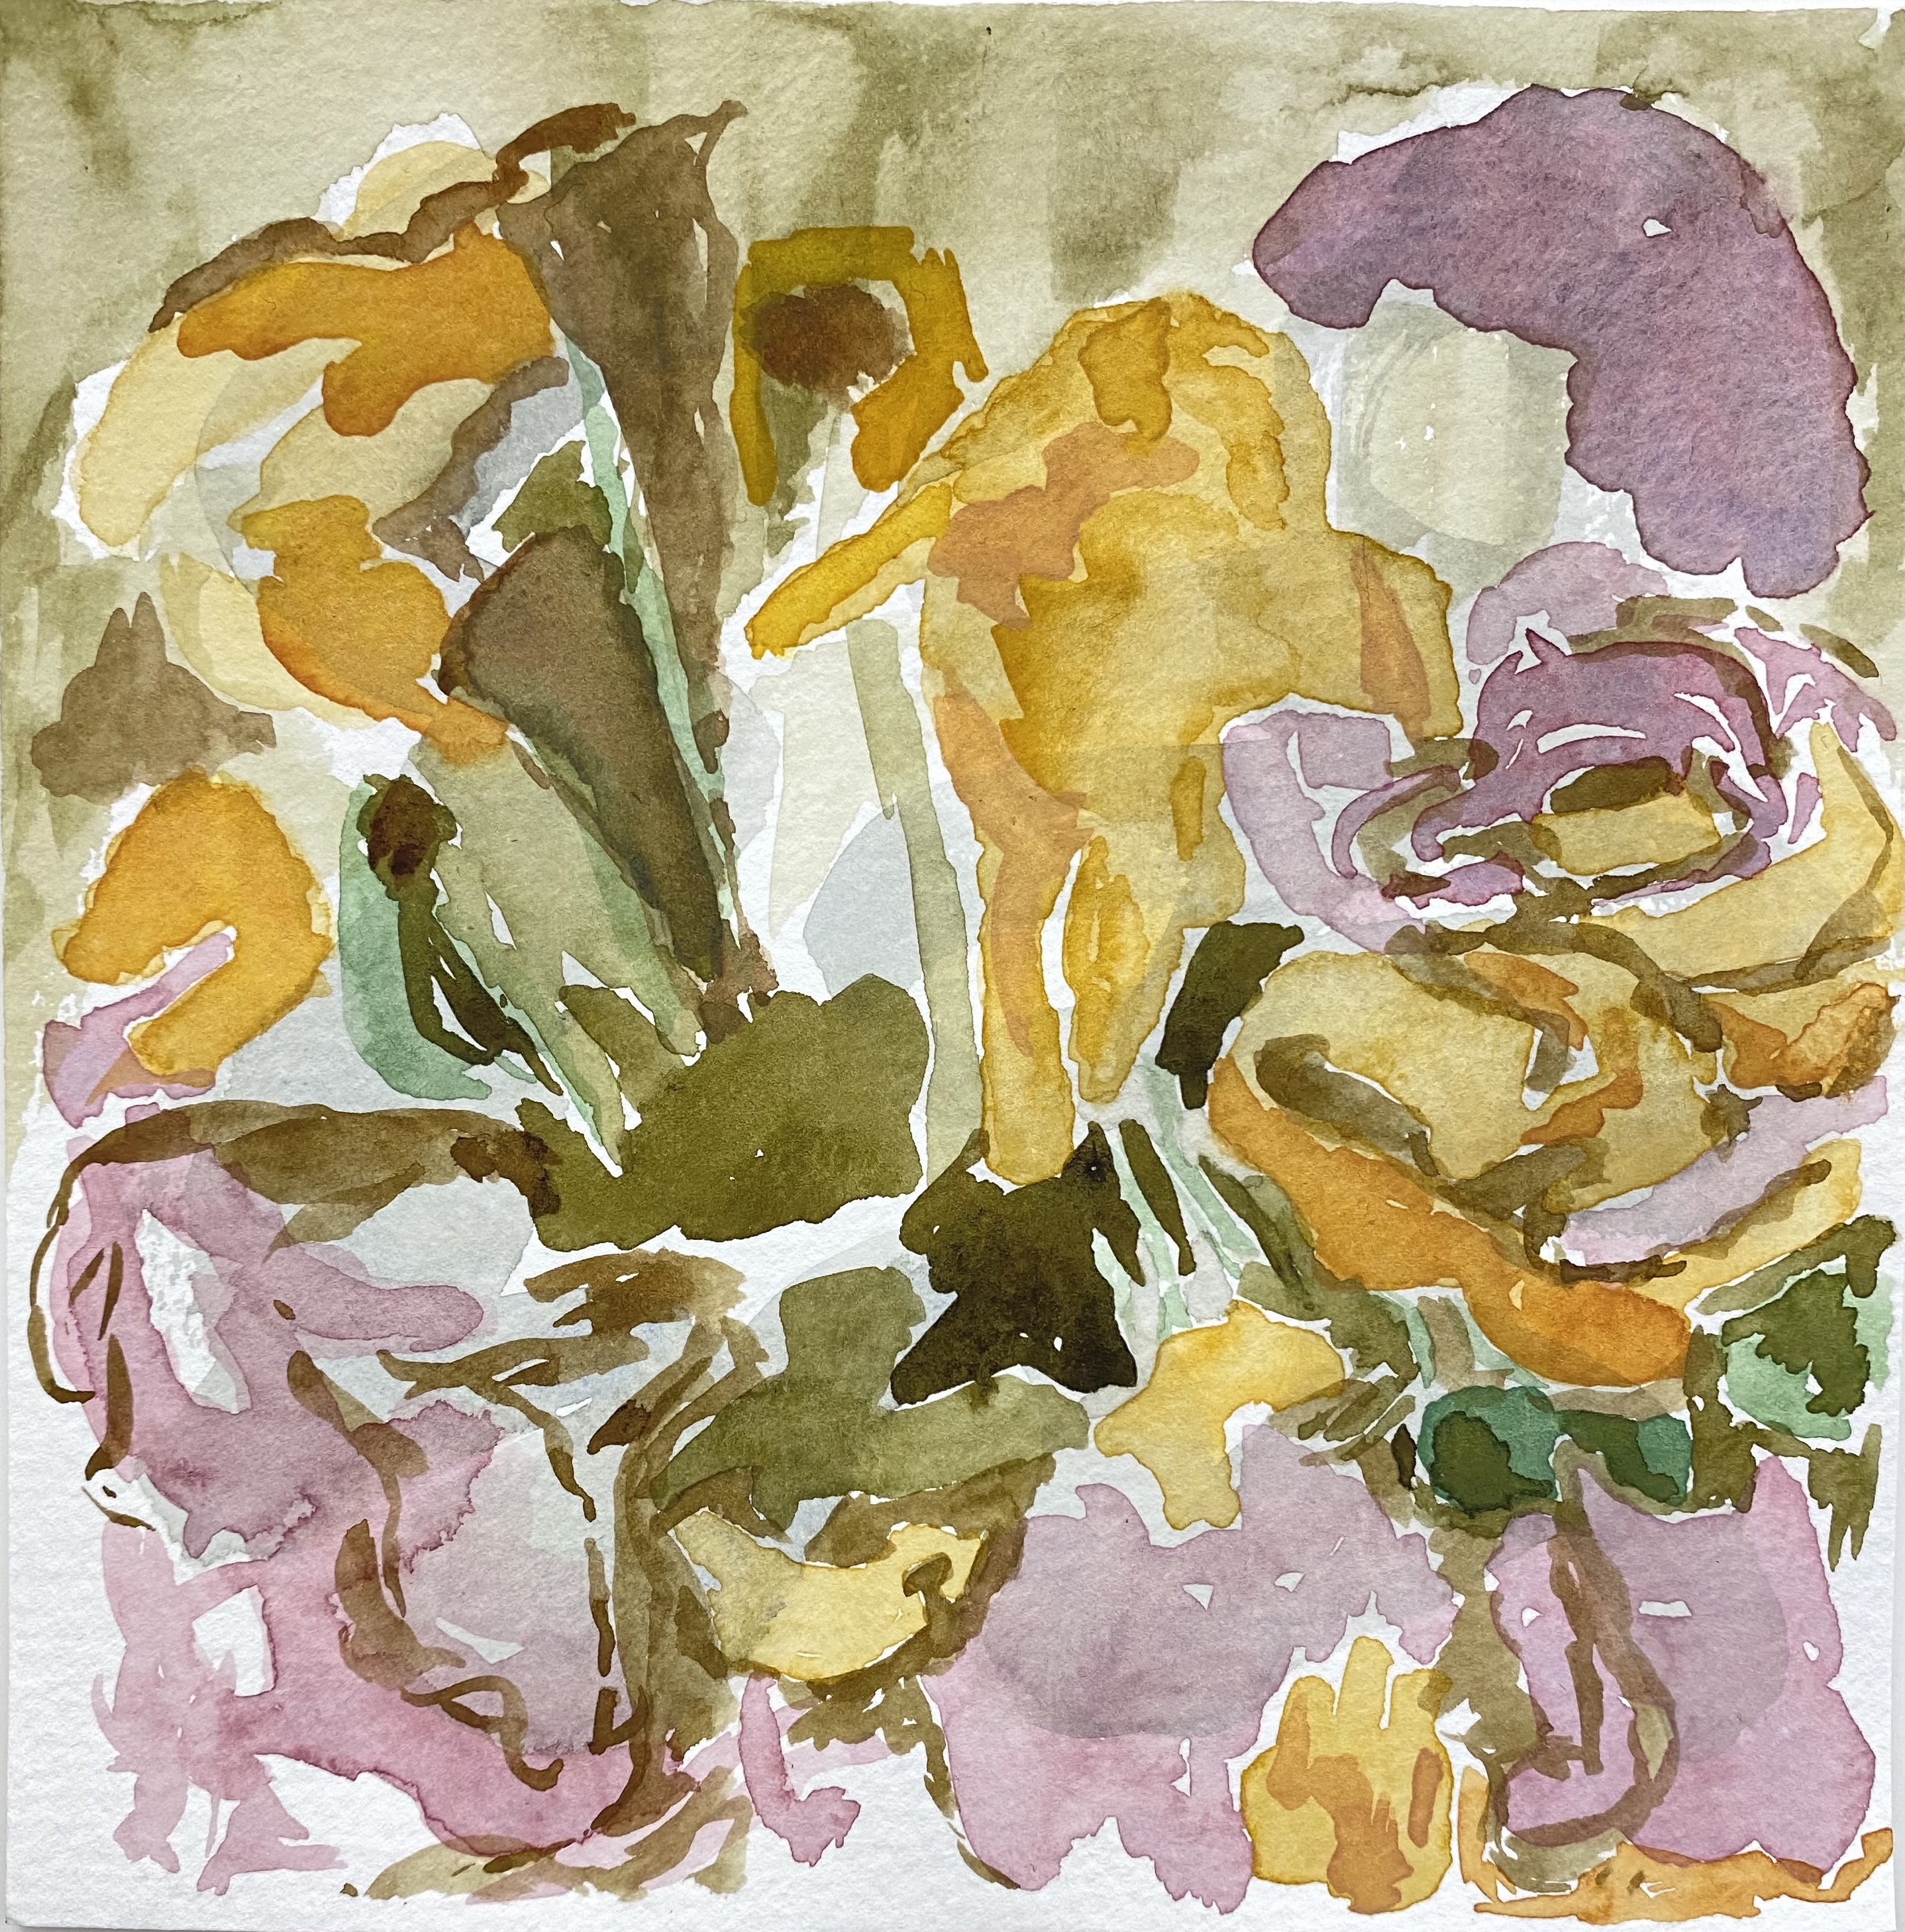 untitled (centre of plant life) watercolour by Canadian painter Barbra Edwards, Pender Island, BC